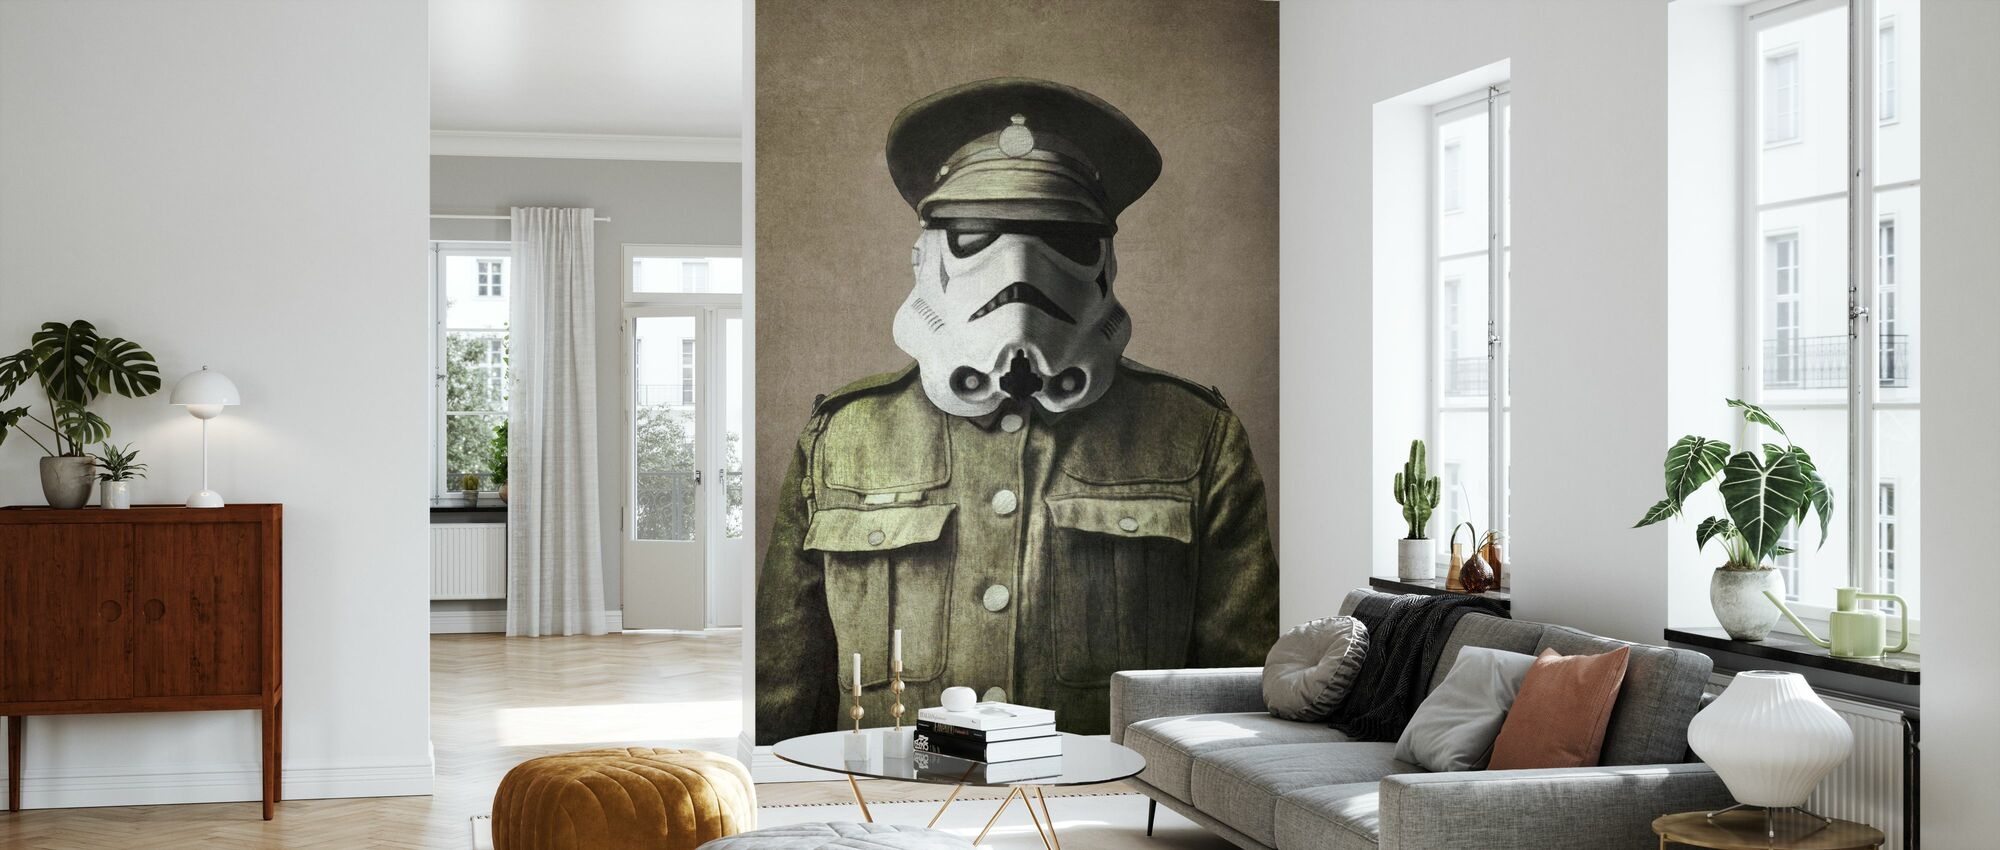 Victorian Wars Sgt. Stormley - Wallpaper - Living Room